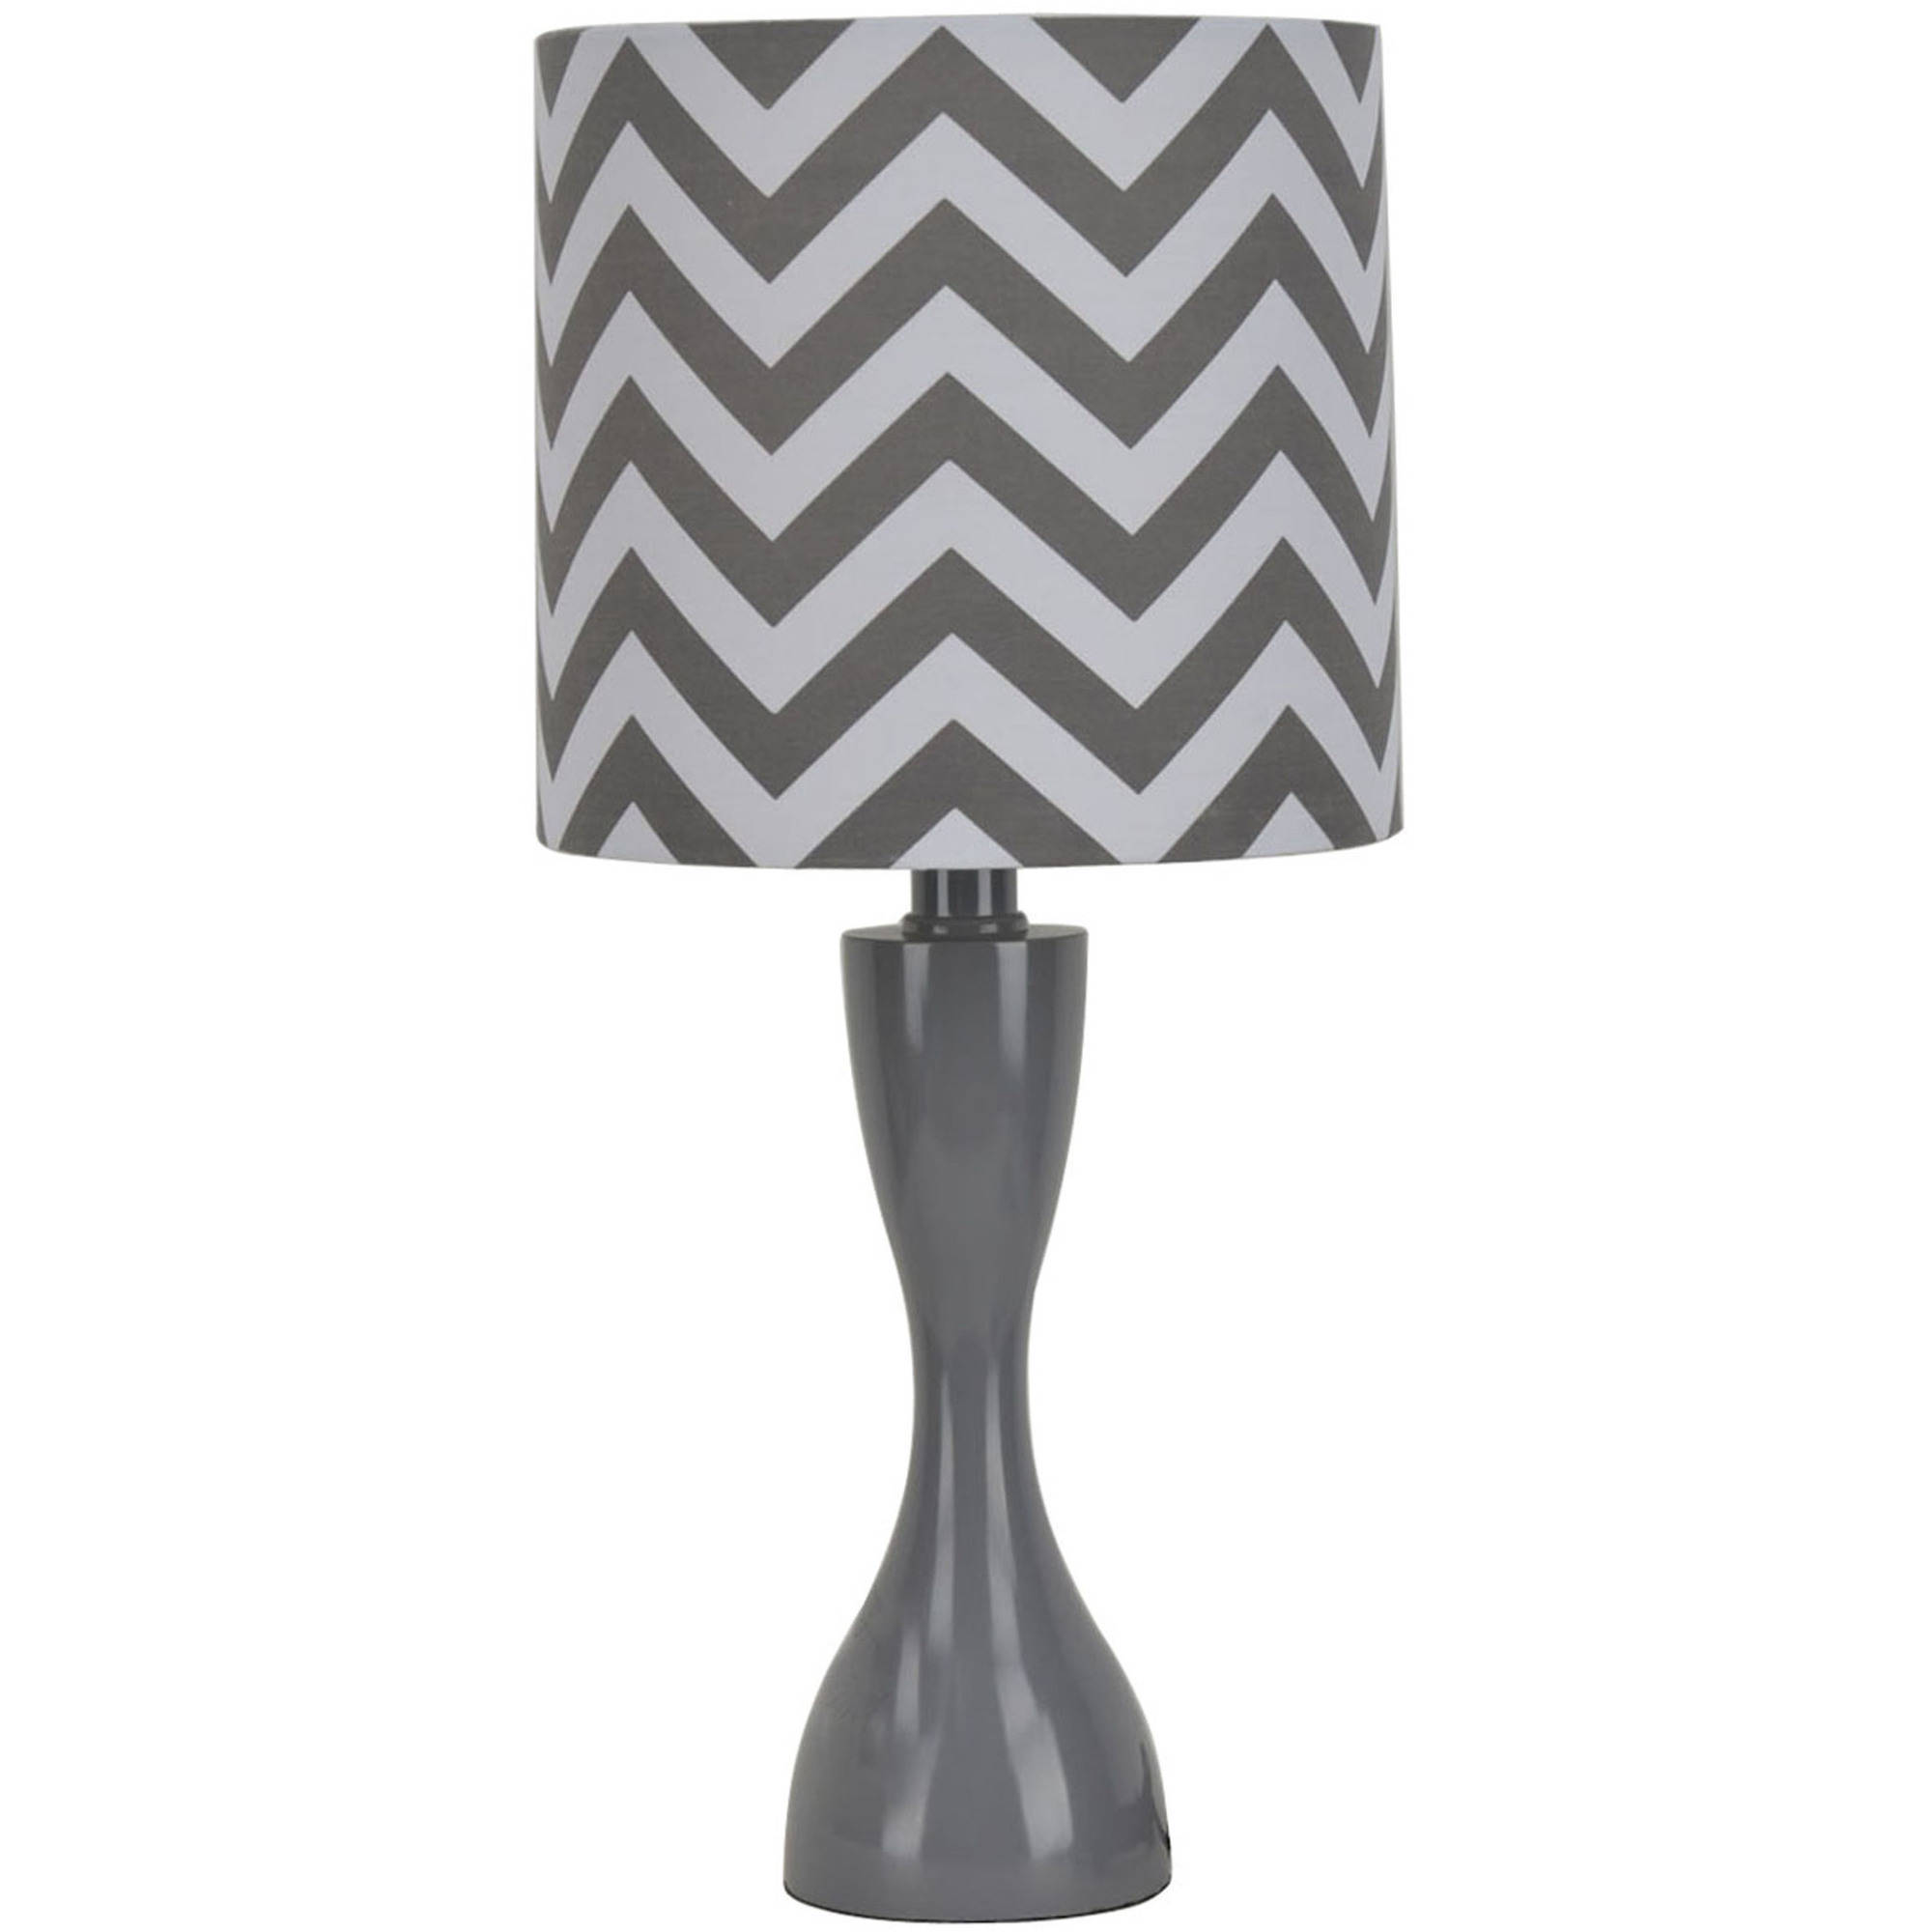 Mainstays Chevron Table Lamp